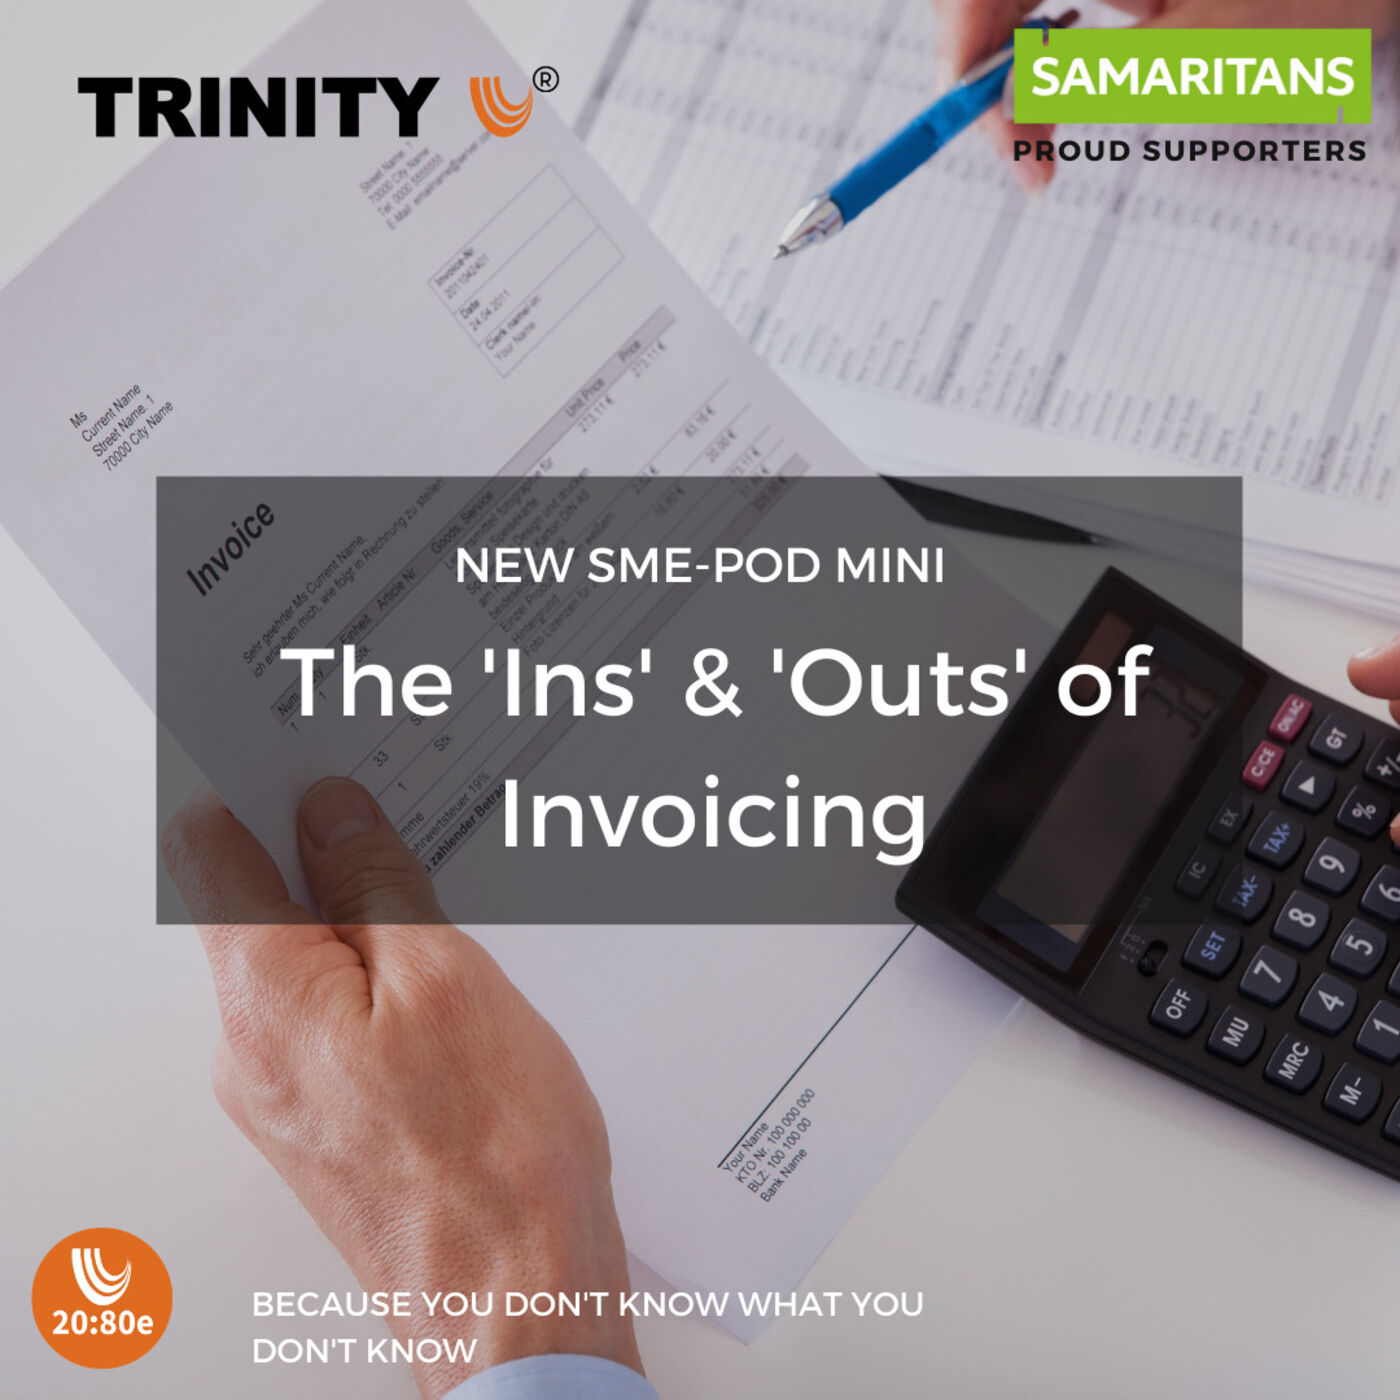 The 'Ins' & 'Outs' of Invoicing